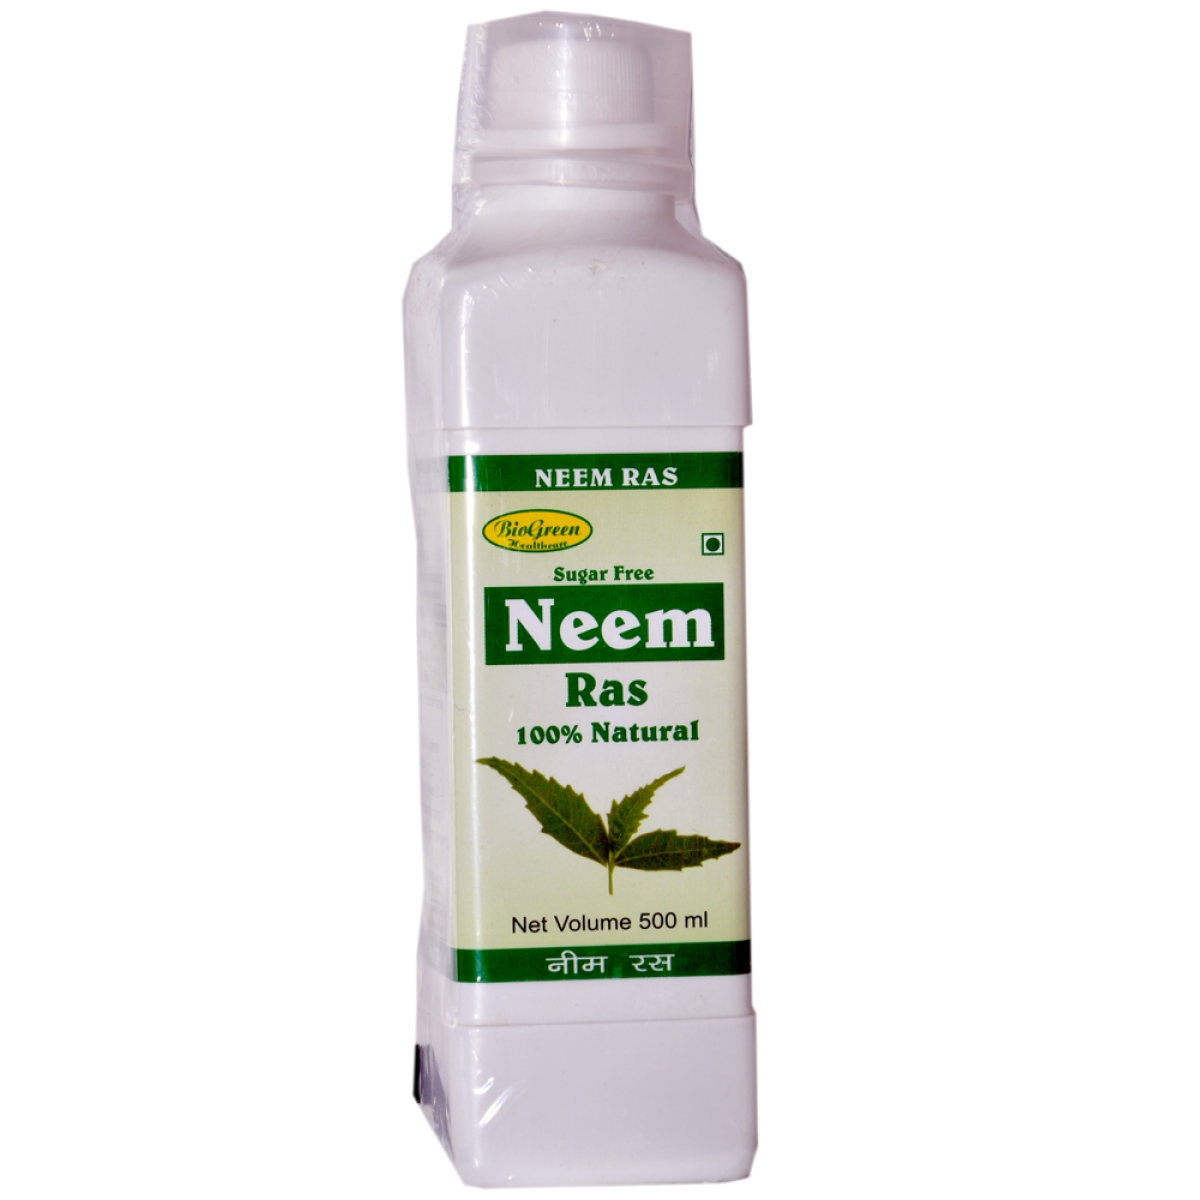 Neem Ras In Murshidabad